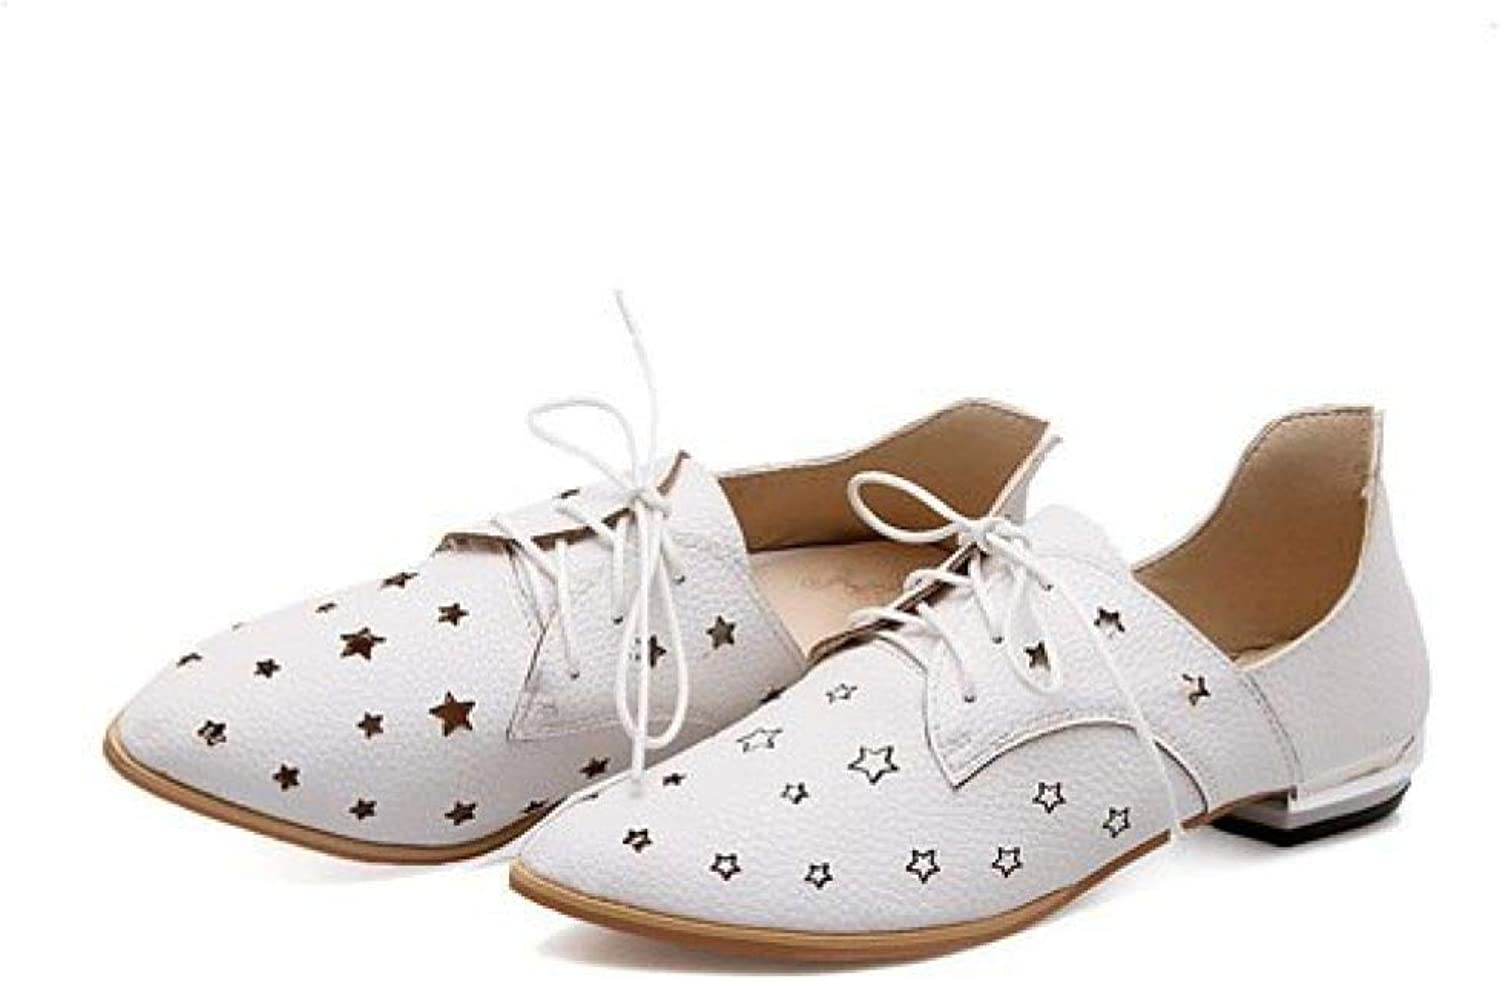 Fay Waters Women's Star Perforated Pointed Toe Flats Lace Up Breathable Hollow Cut Fashion Oxford shoes